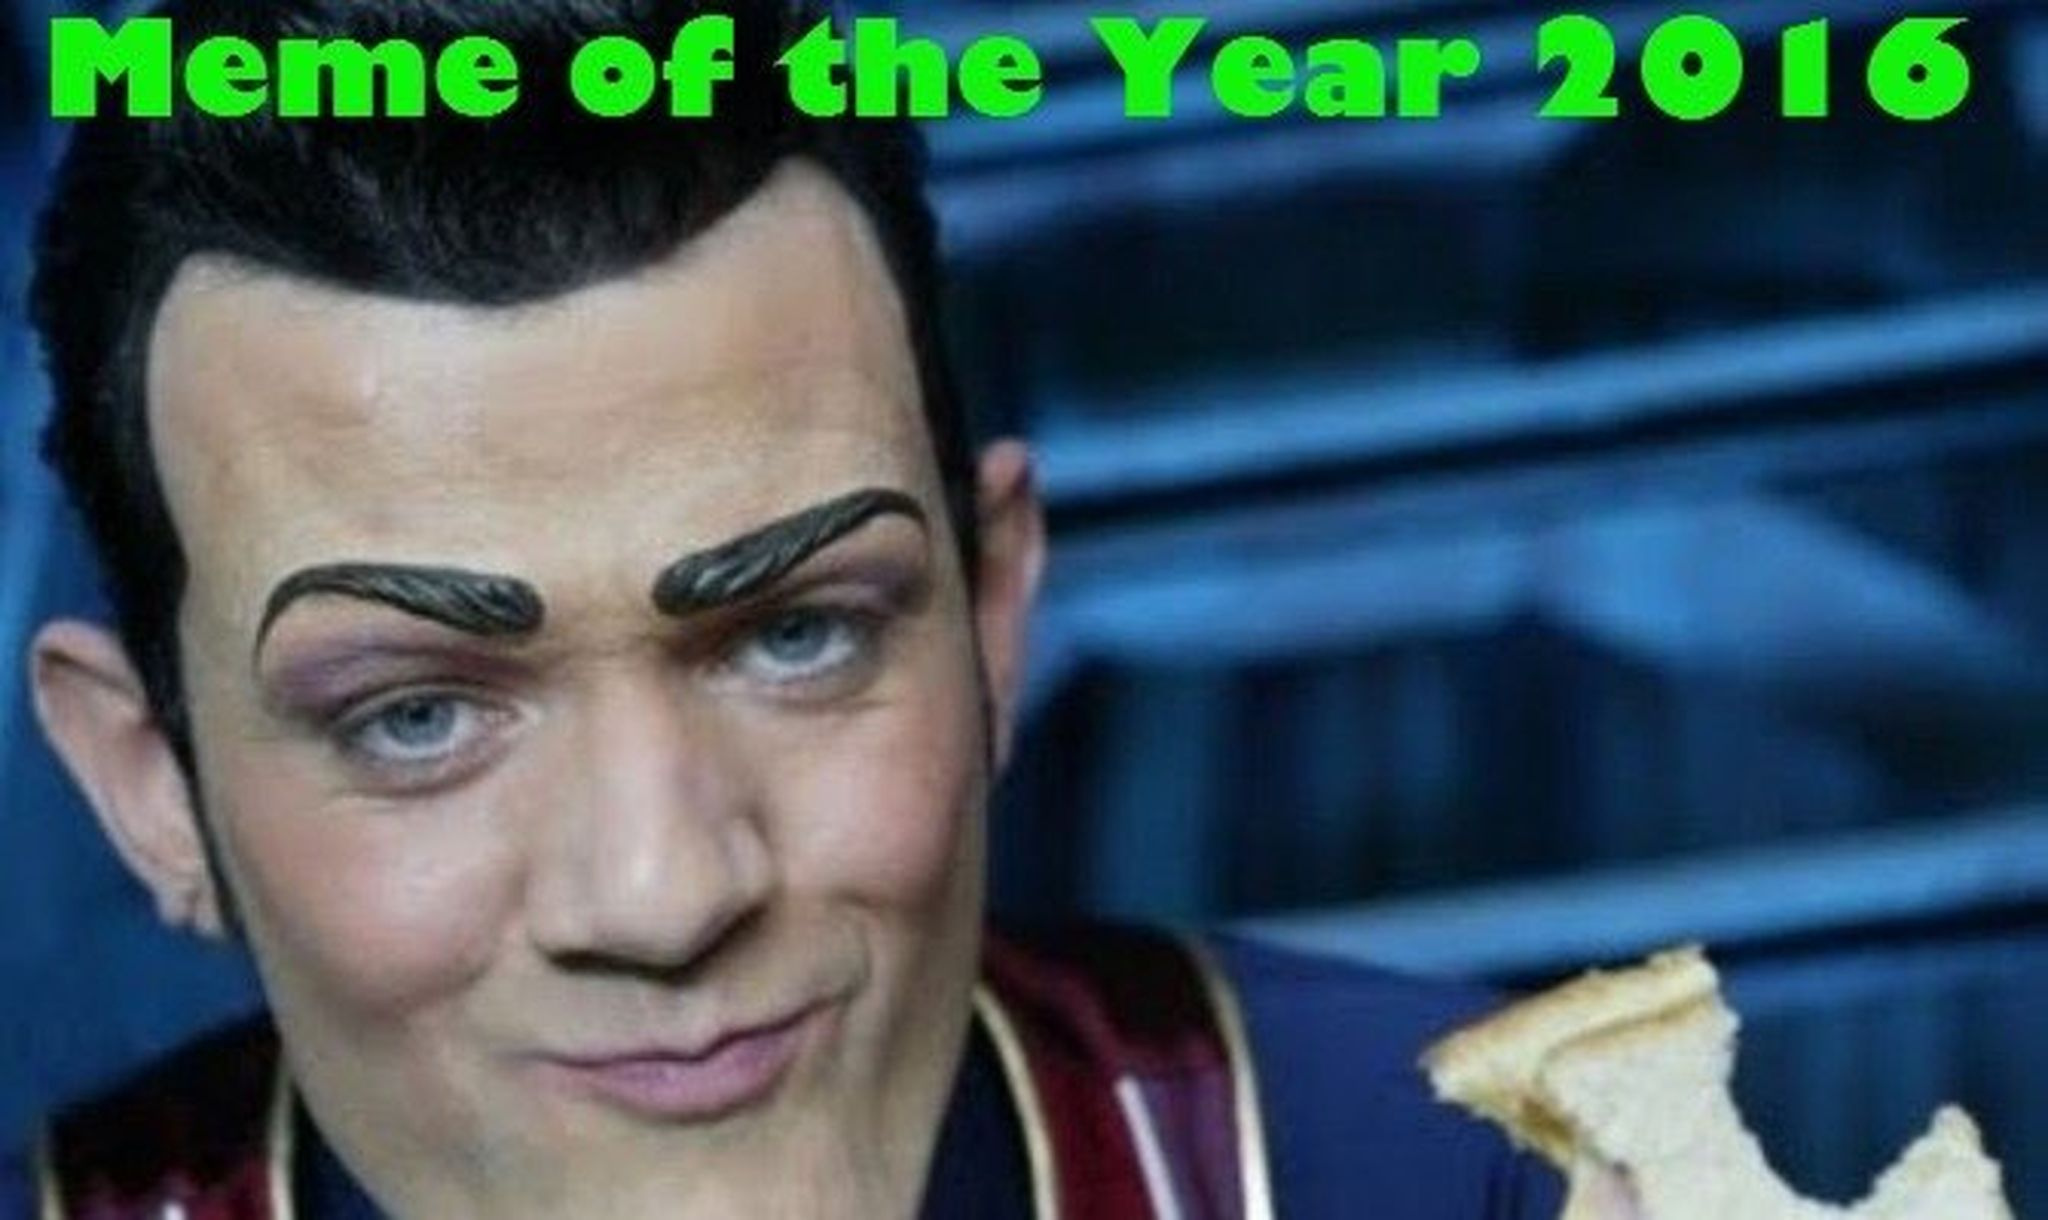 Why Robbie Rotten s  We Are Number One  Was Named  Meme of the Year  robbie rotten lazytown meme of the year